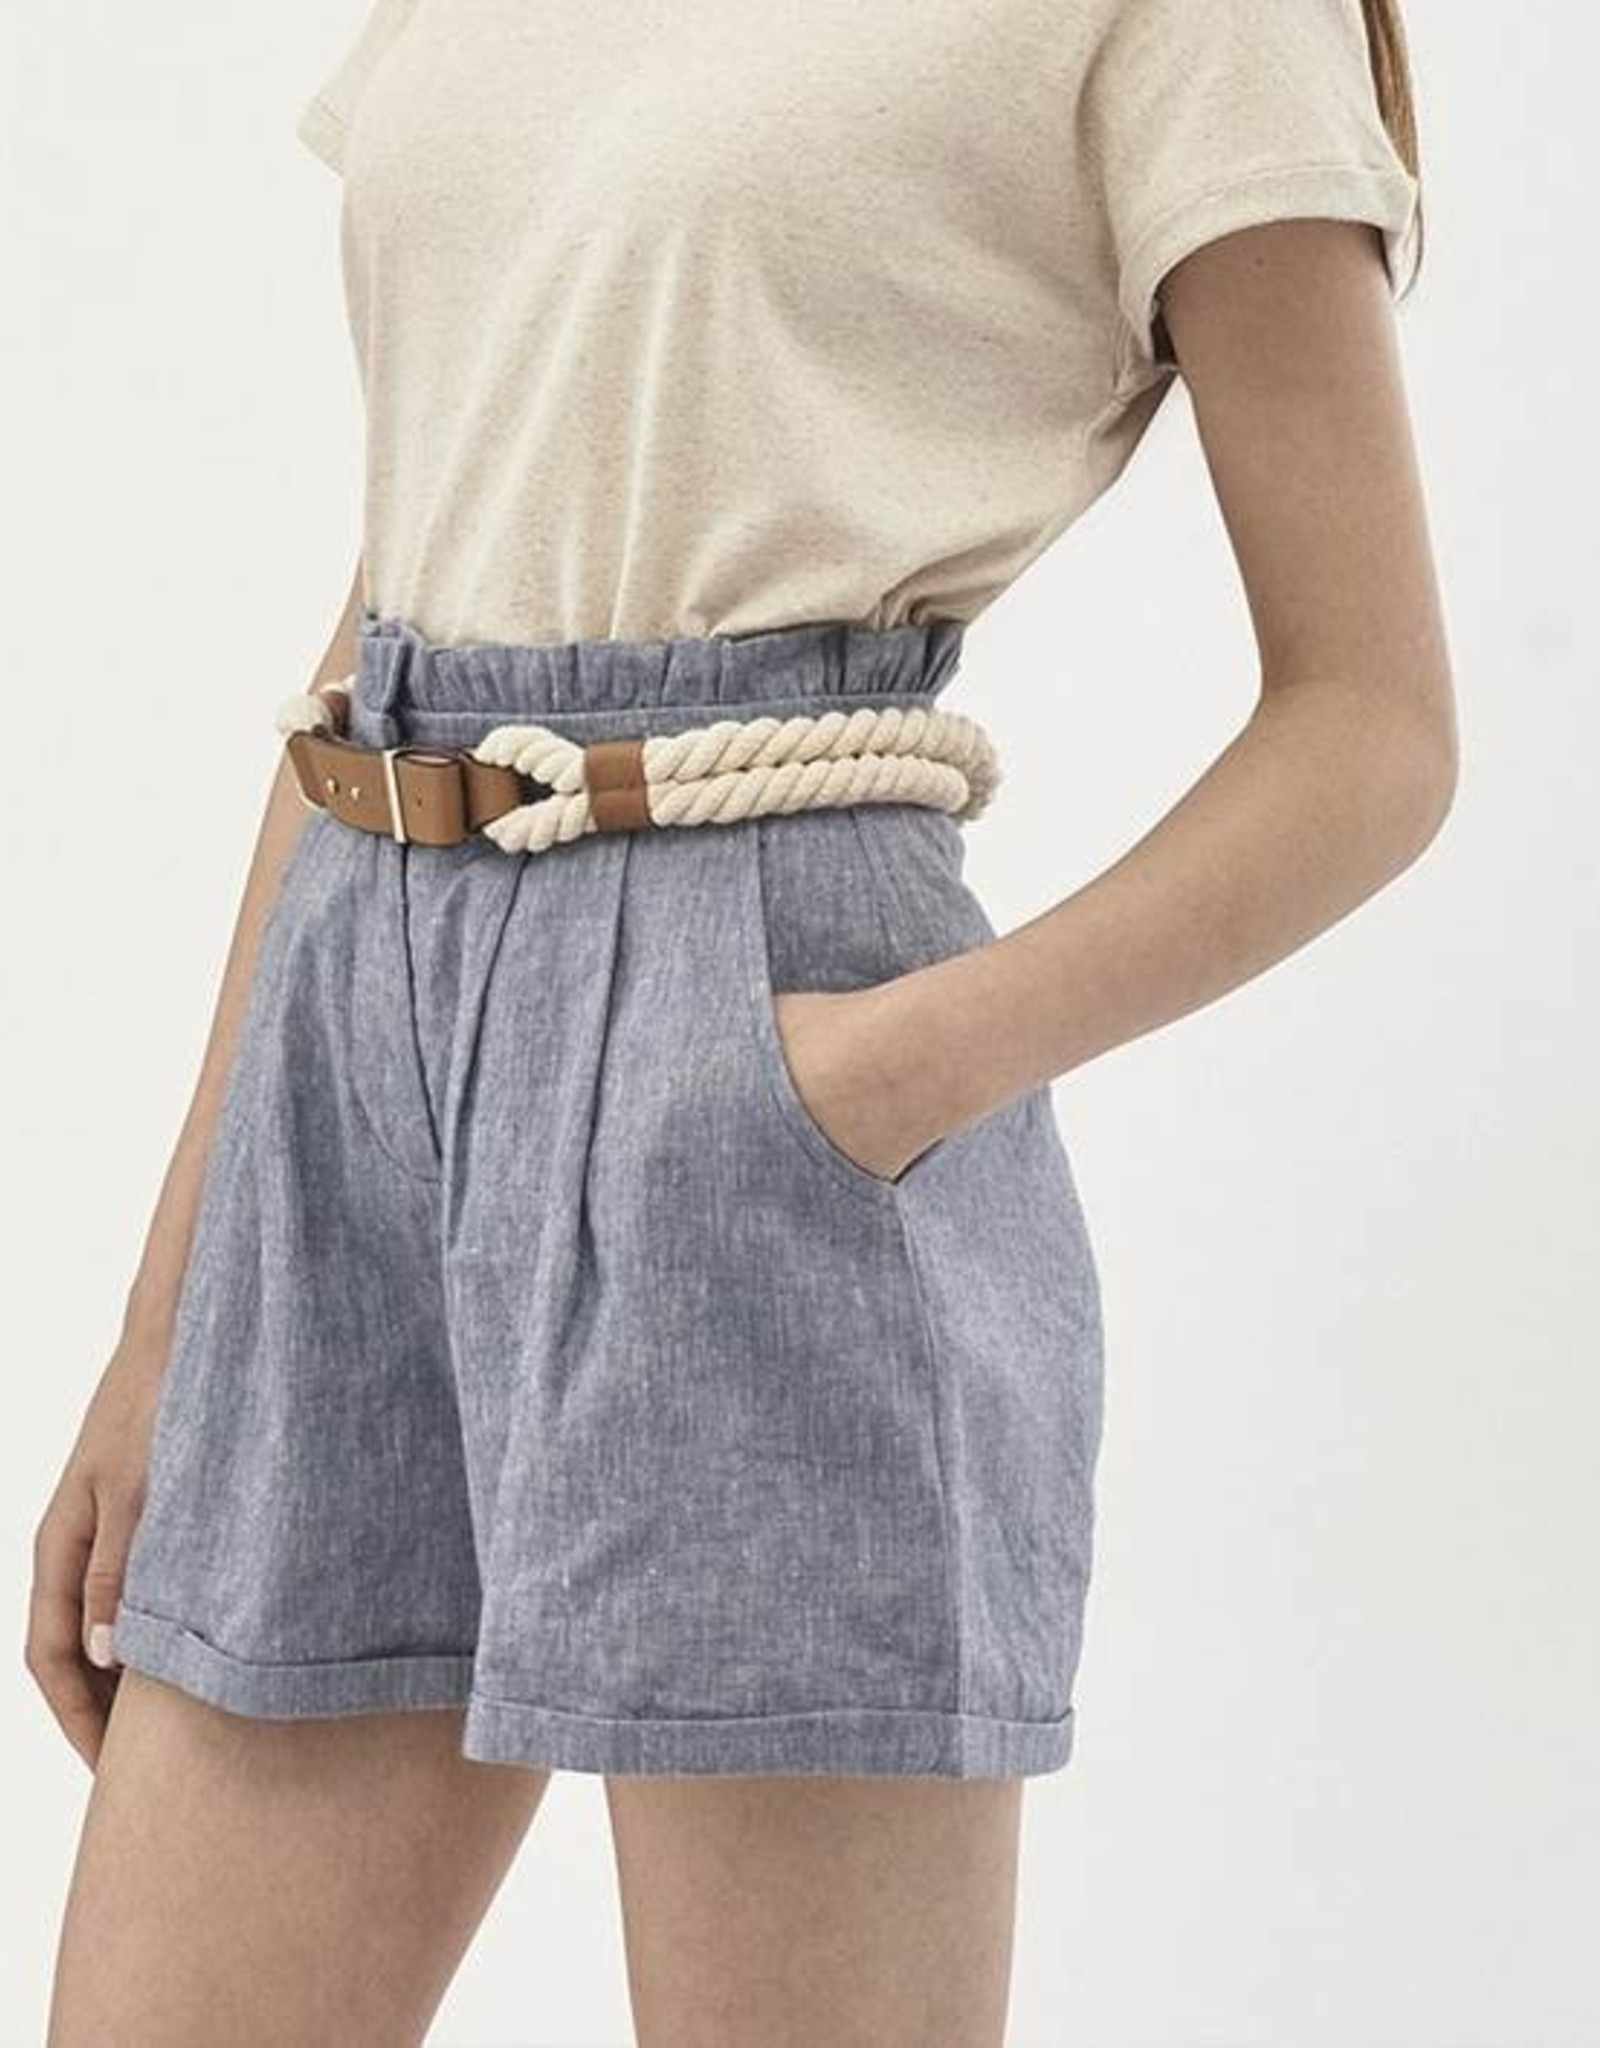 Organication SHORT LINNENMIX DENIMLOOK